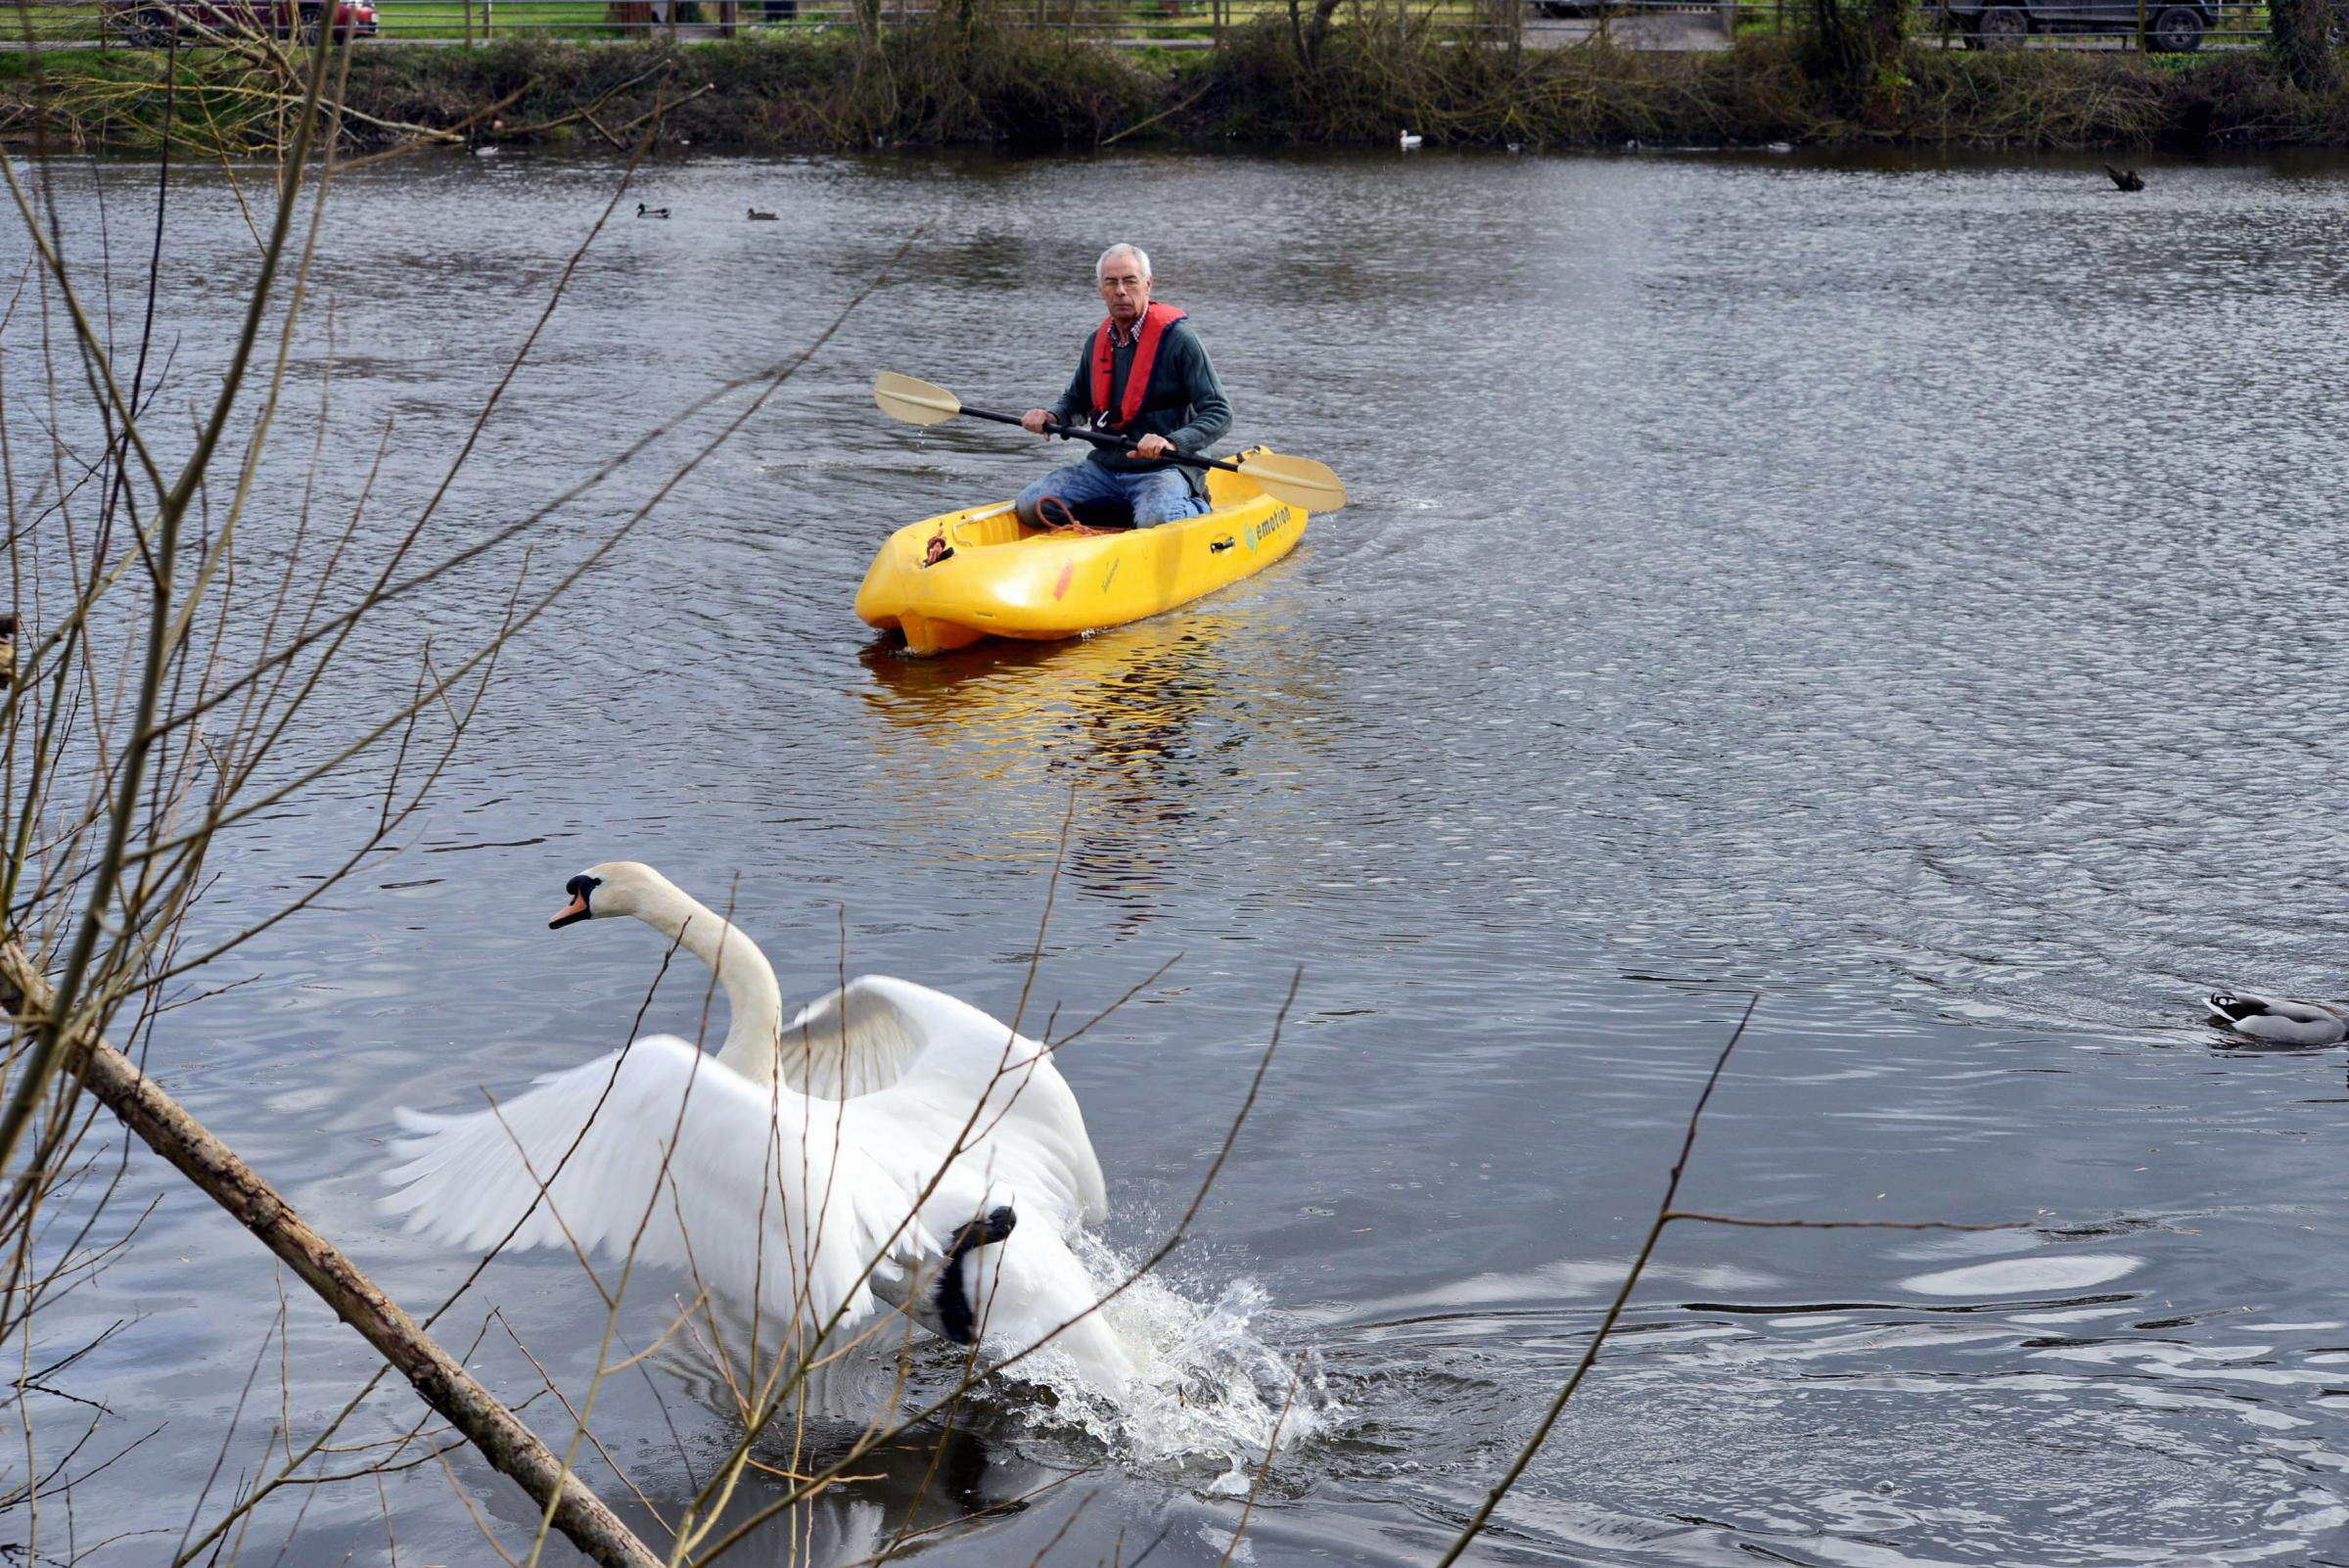 Roger Lucken from Secret World tries, and fails, to save the injured swan